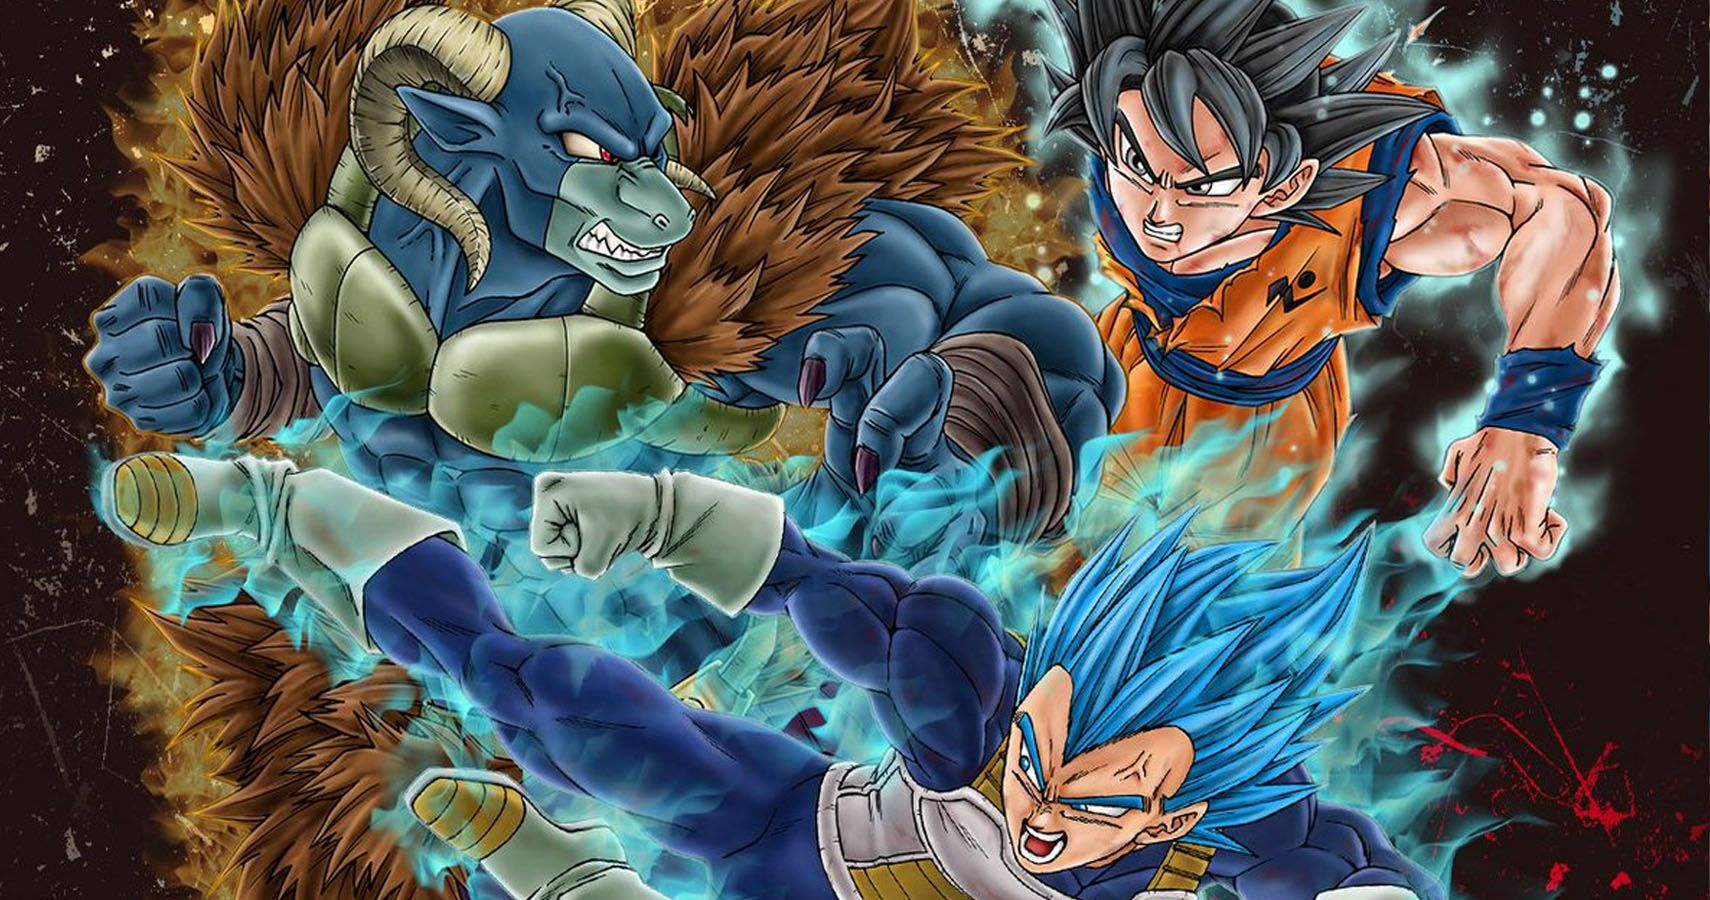 Dragon Ball Super Chapter 66 Title, Spoilers, Leaks and Summary